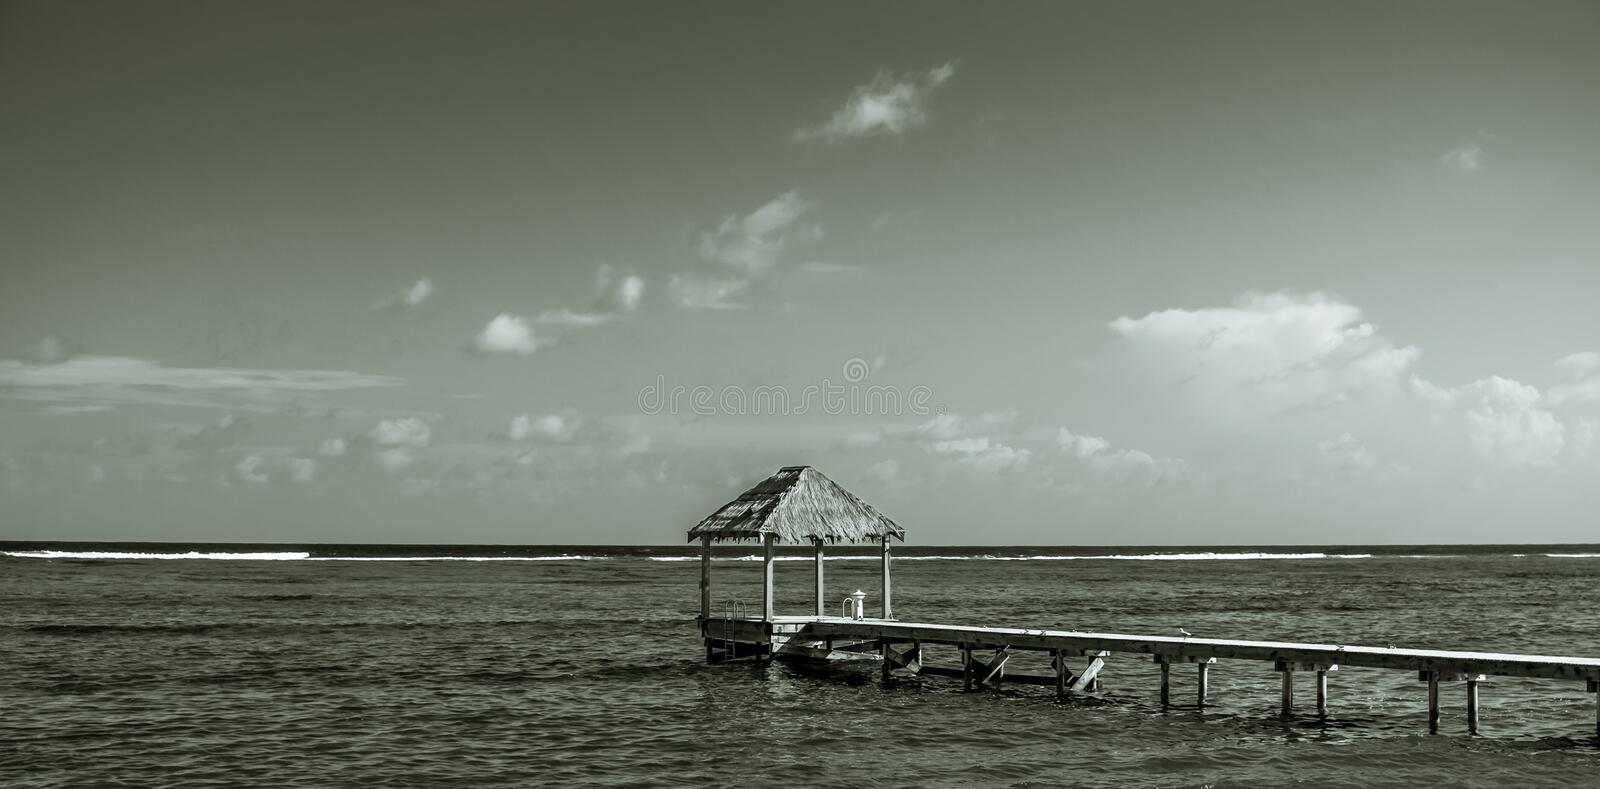 Bodden Town-Pier. Pier on the Caribbean Sea in the Bodden Town area, Grand Cayman, Cayman Islands stock image